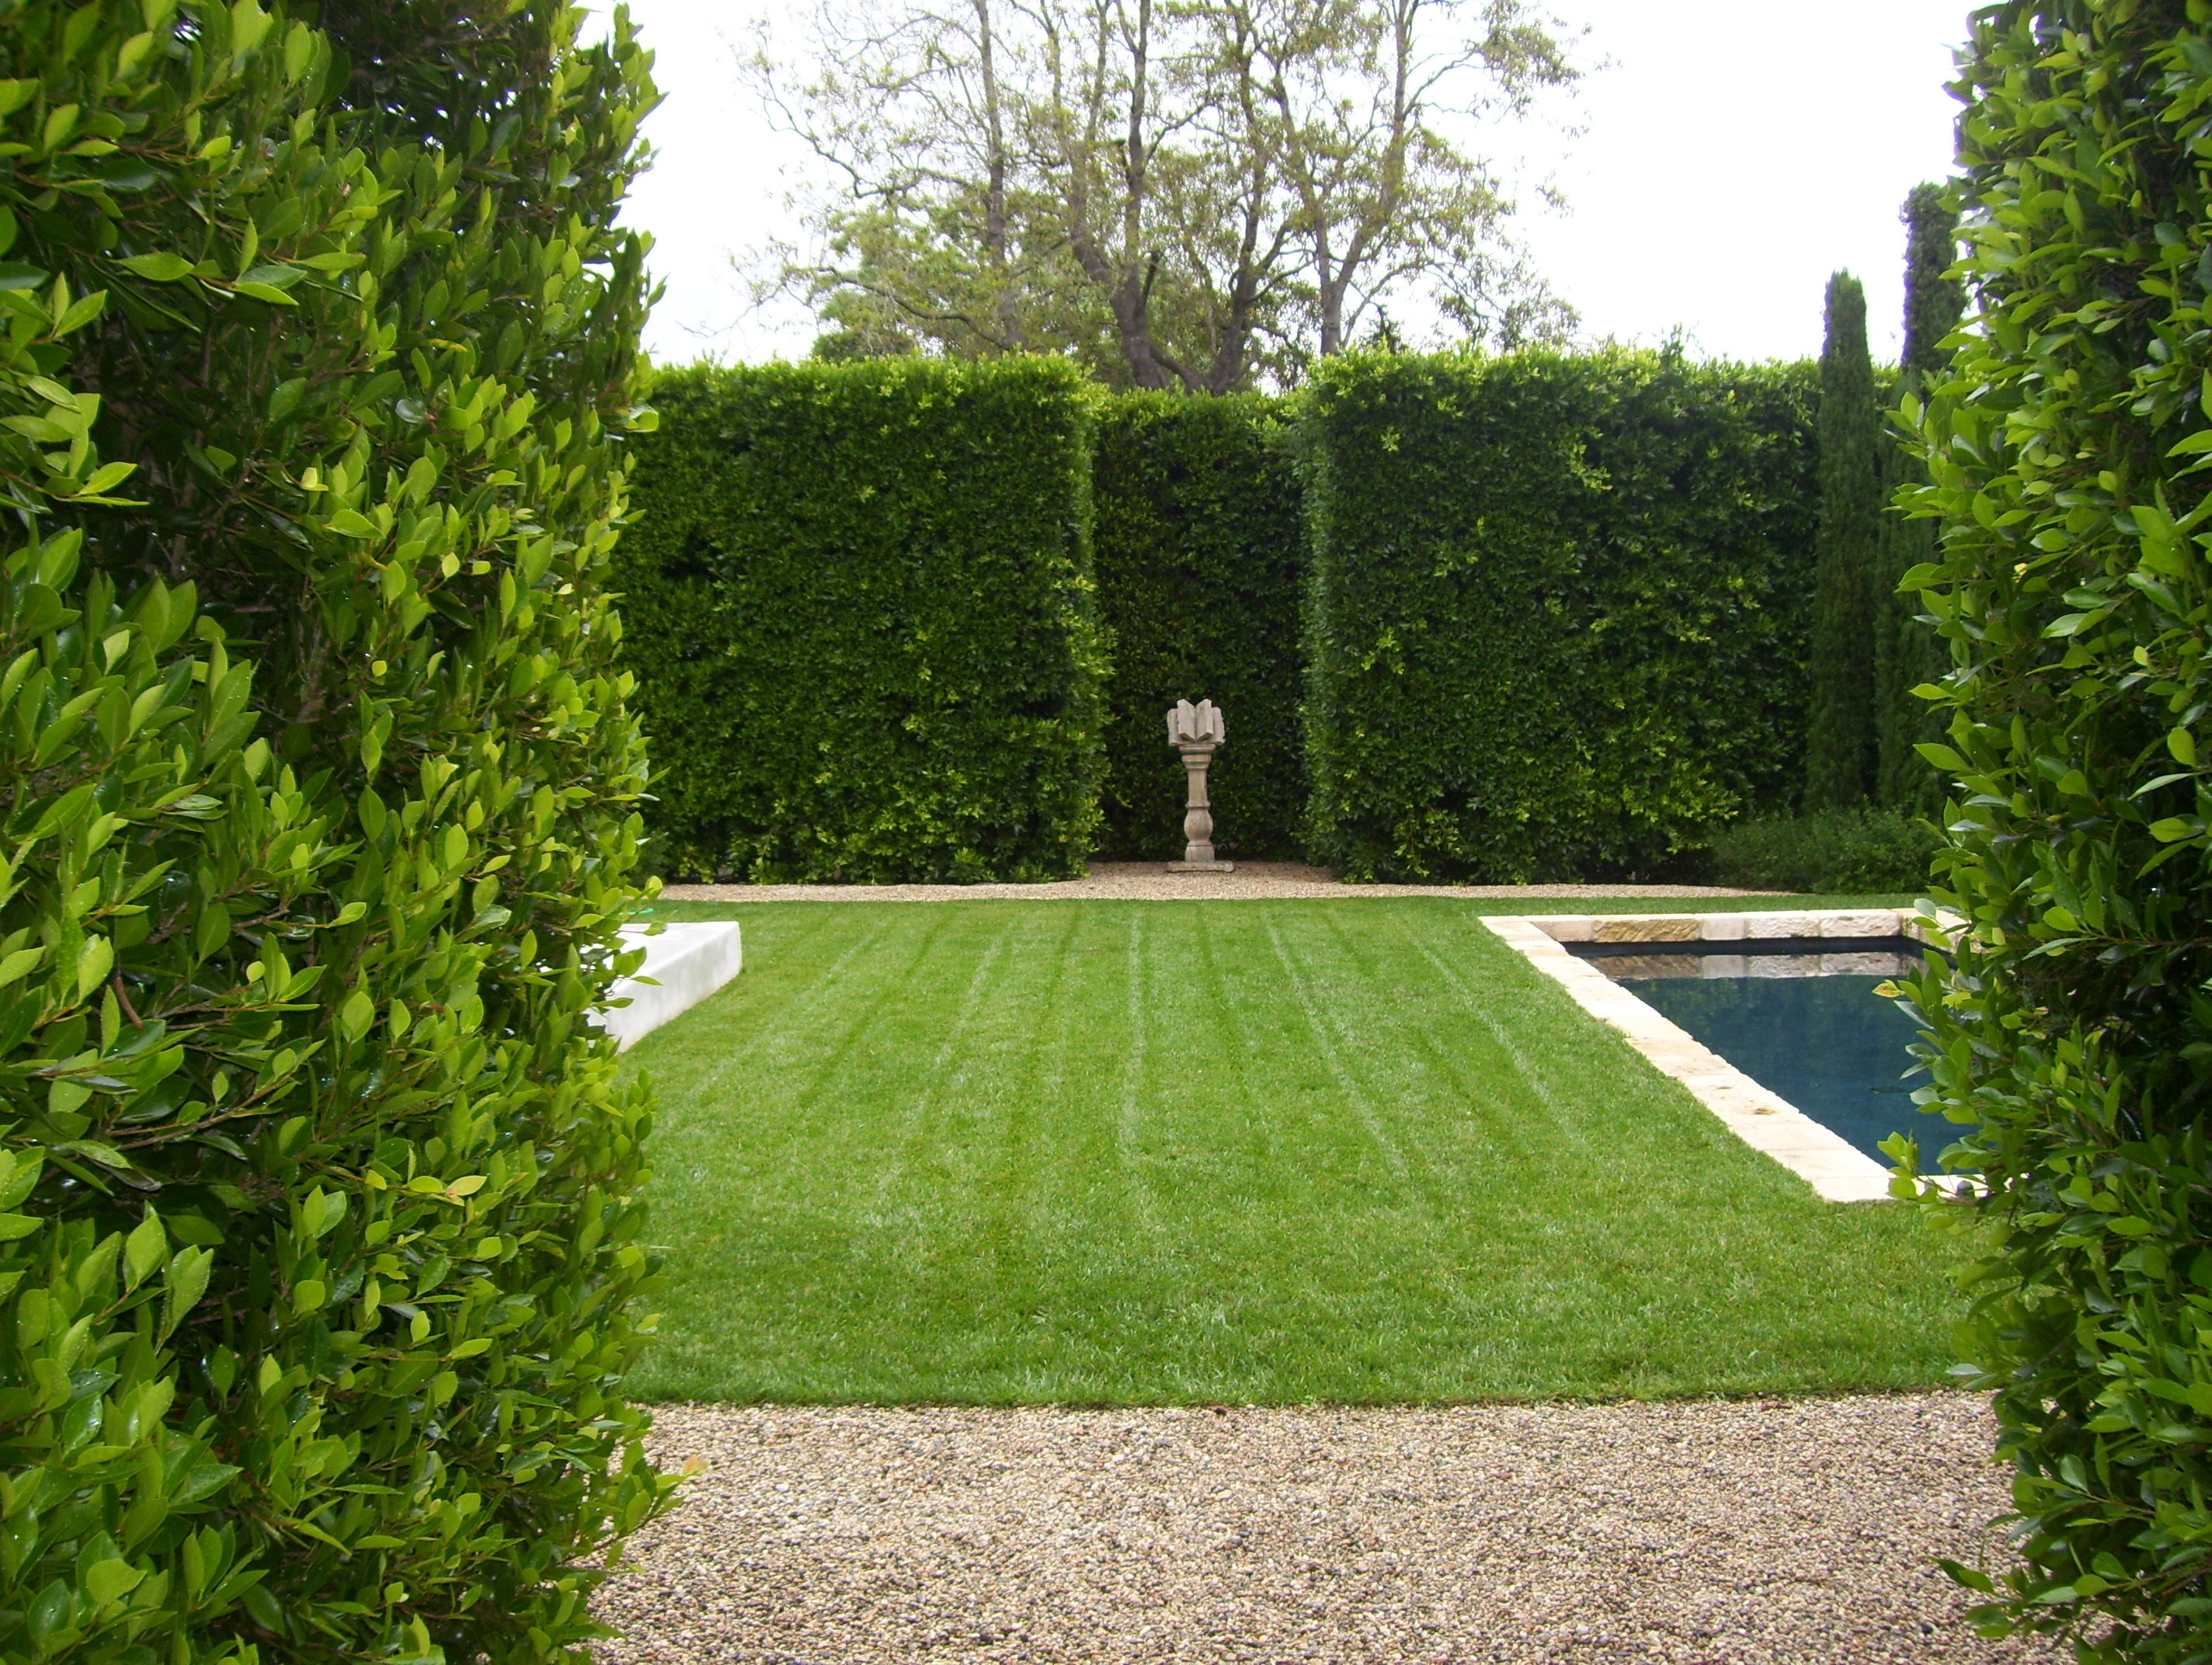 Speciality landscaping landscaping ideas santa barbara for Garden and landscaping ideas